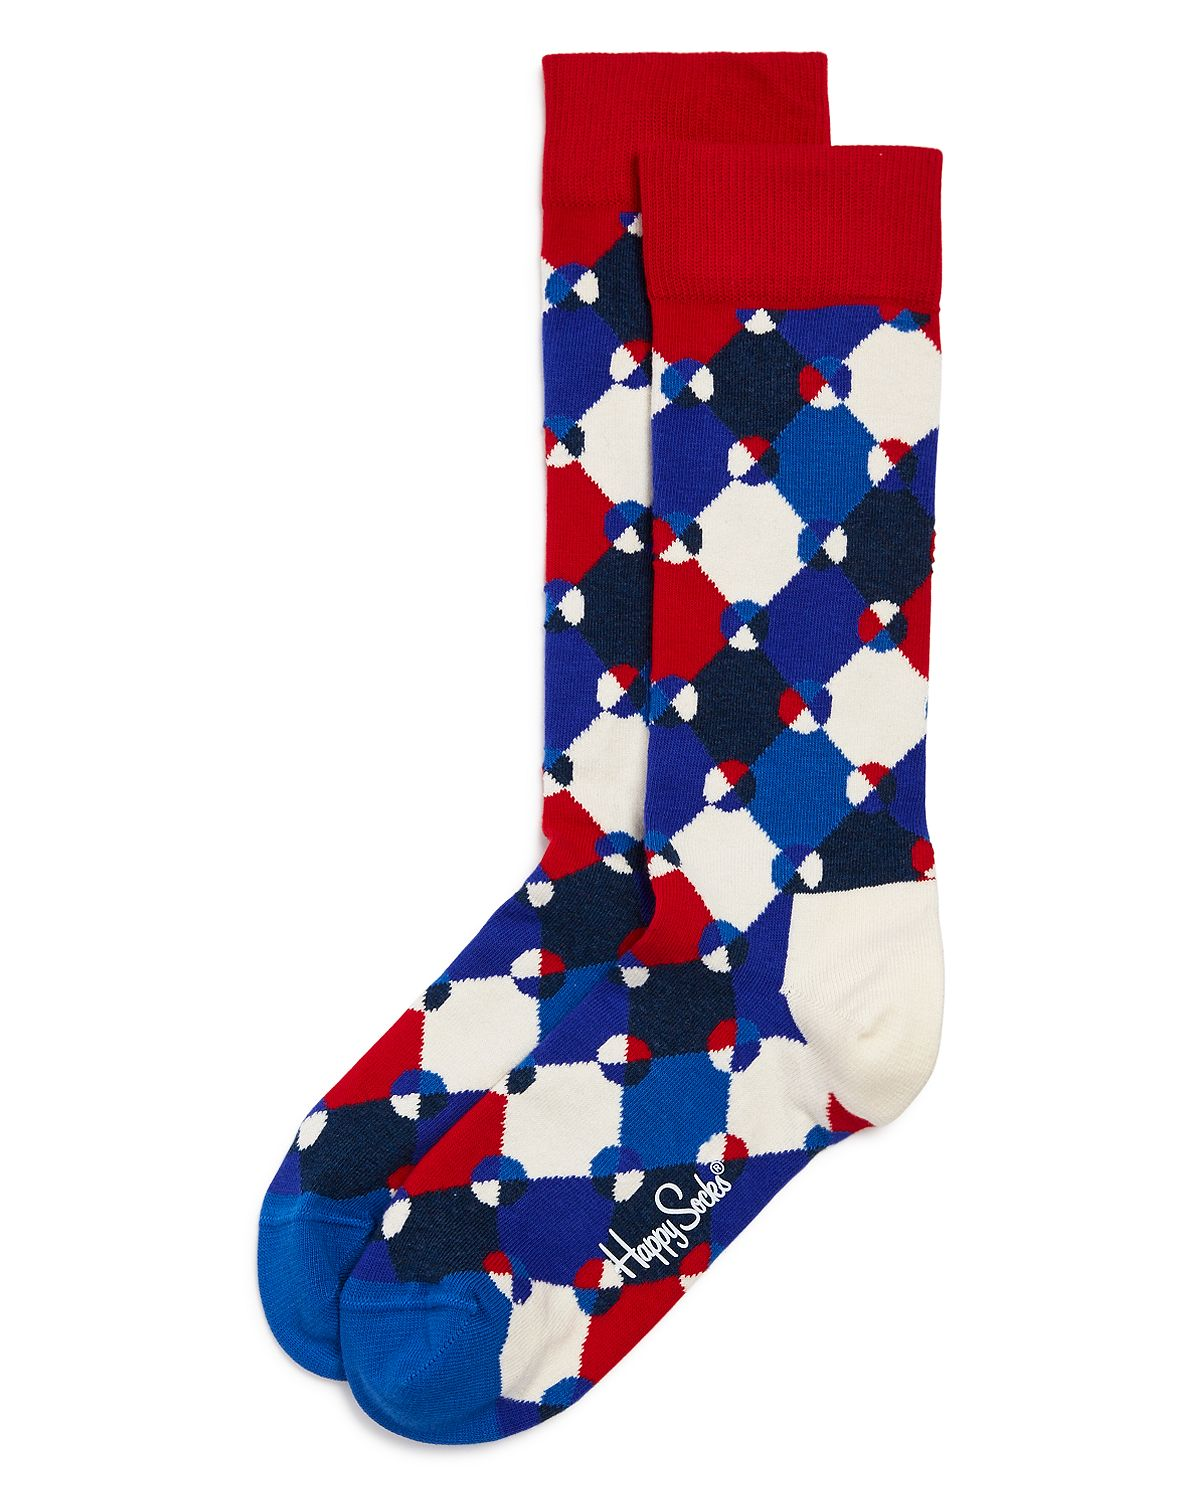 Happy Socks Diamond Dot Socks Navy/Red